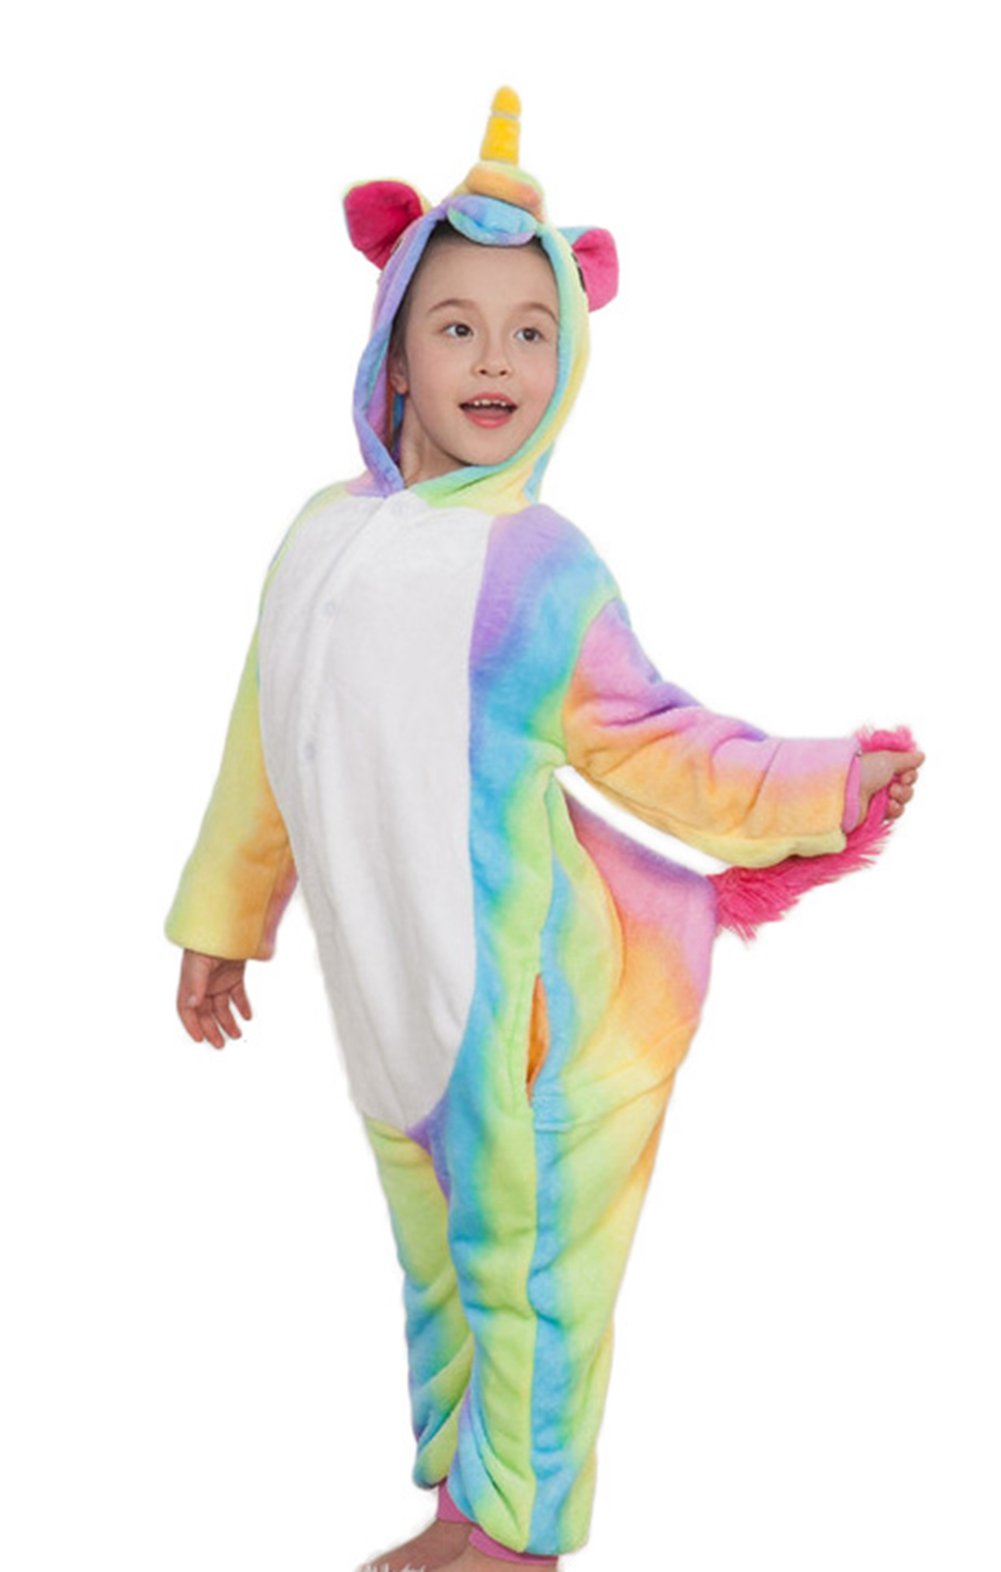 Goldtry Soft Flannel Child Cosplay Costumes Pajamas Cute Kids Multi-Colors Unicorn Onesie Gift Rainbow 105#